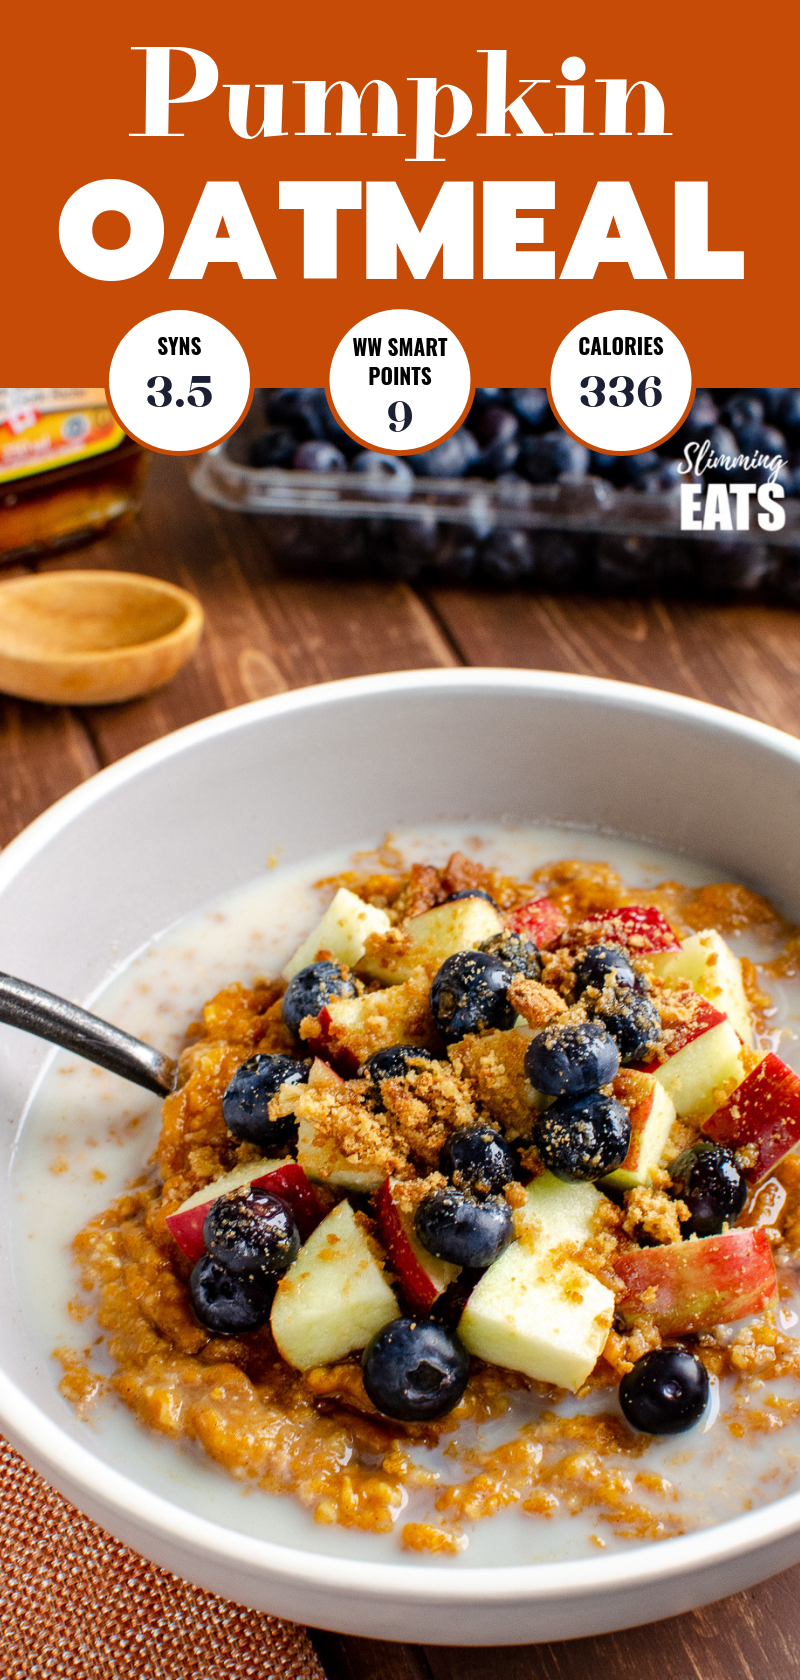 pumpkin oatmeal in grey bowl with blueberries, apple and crumbled biscuit pin image.